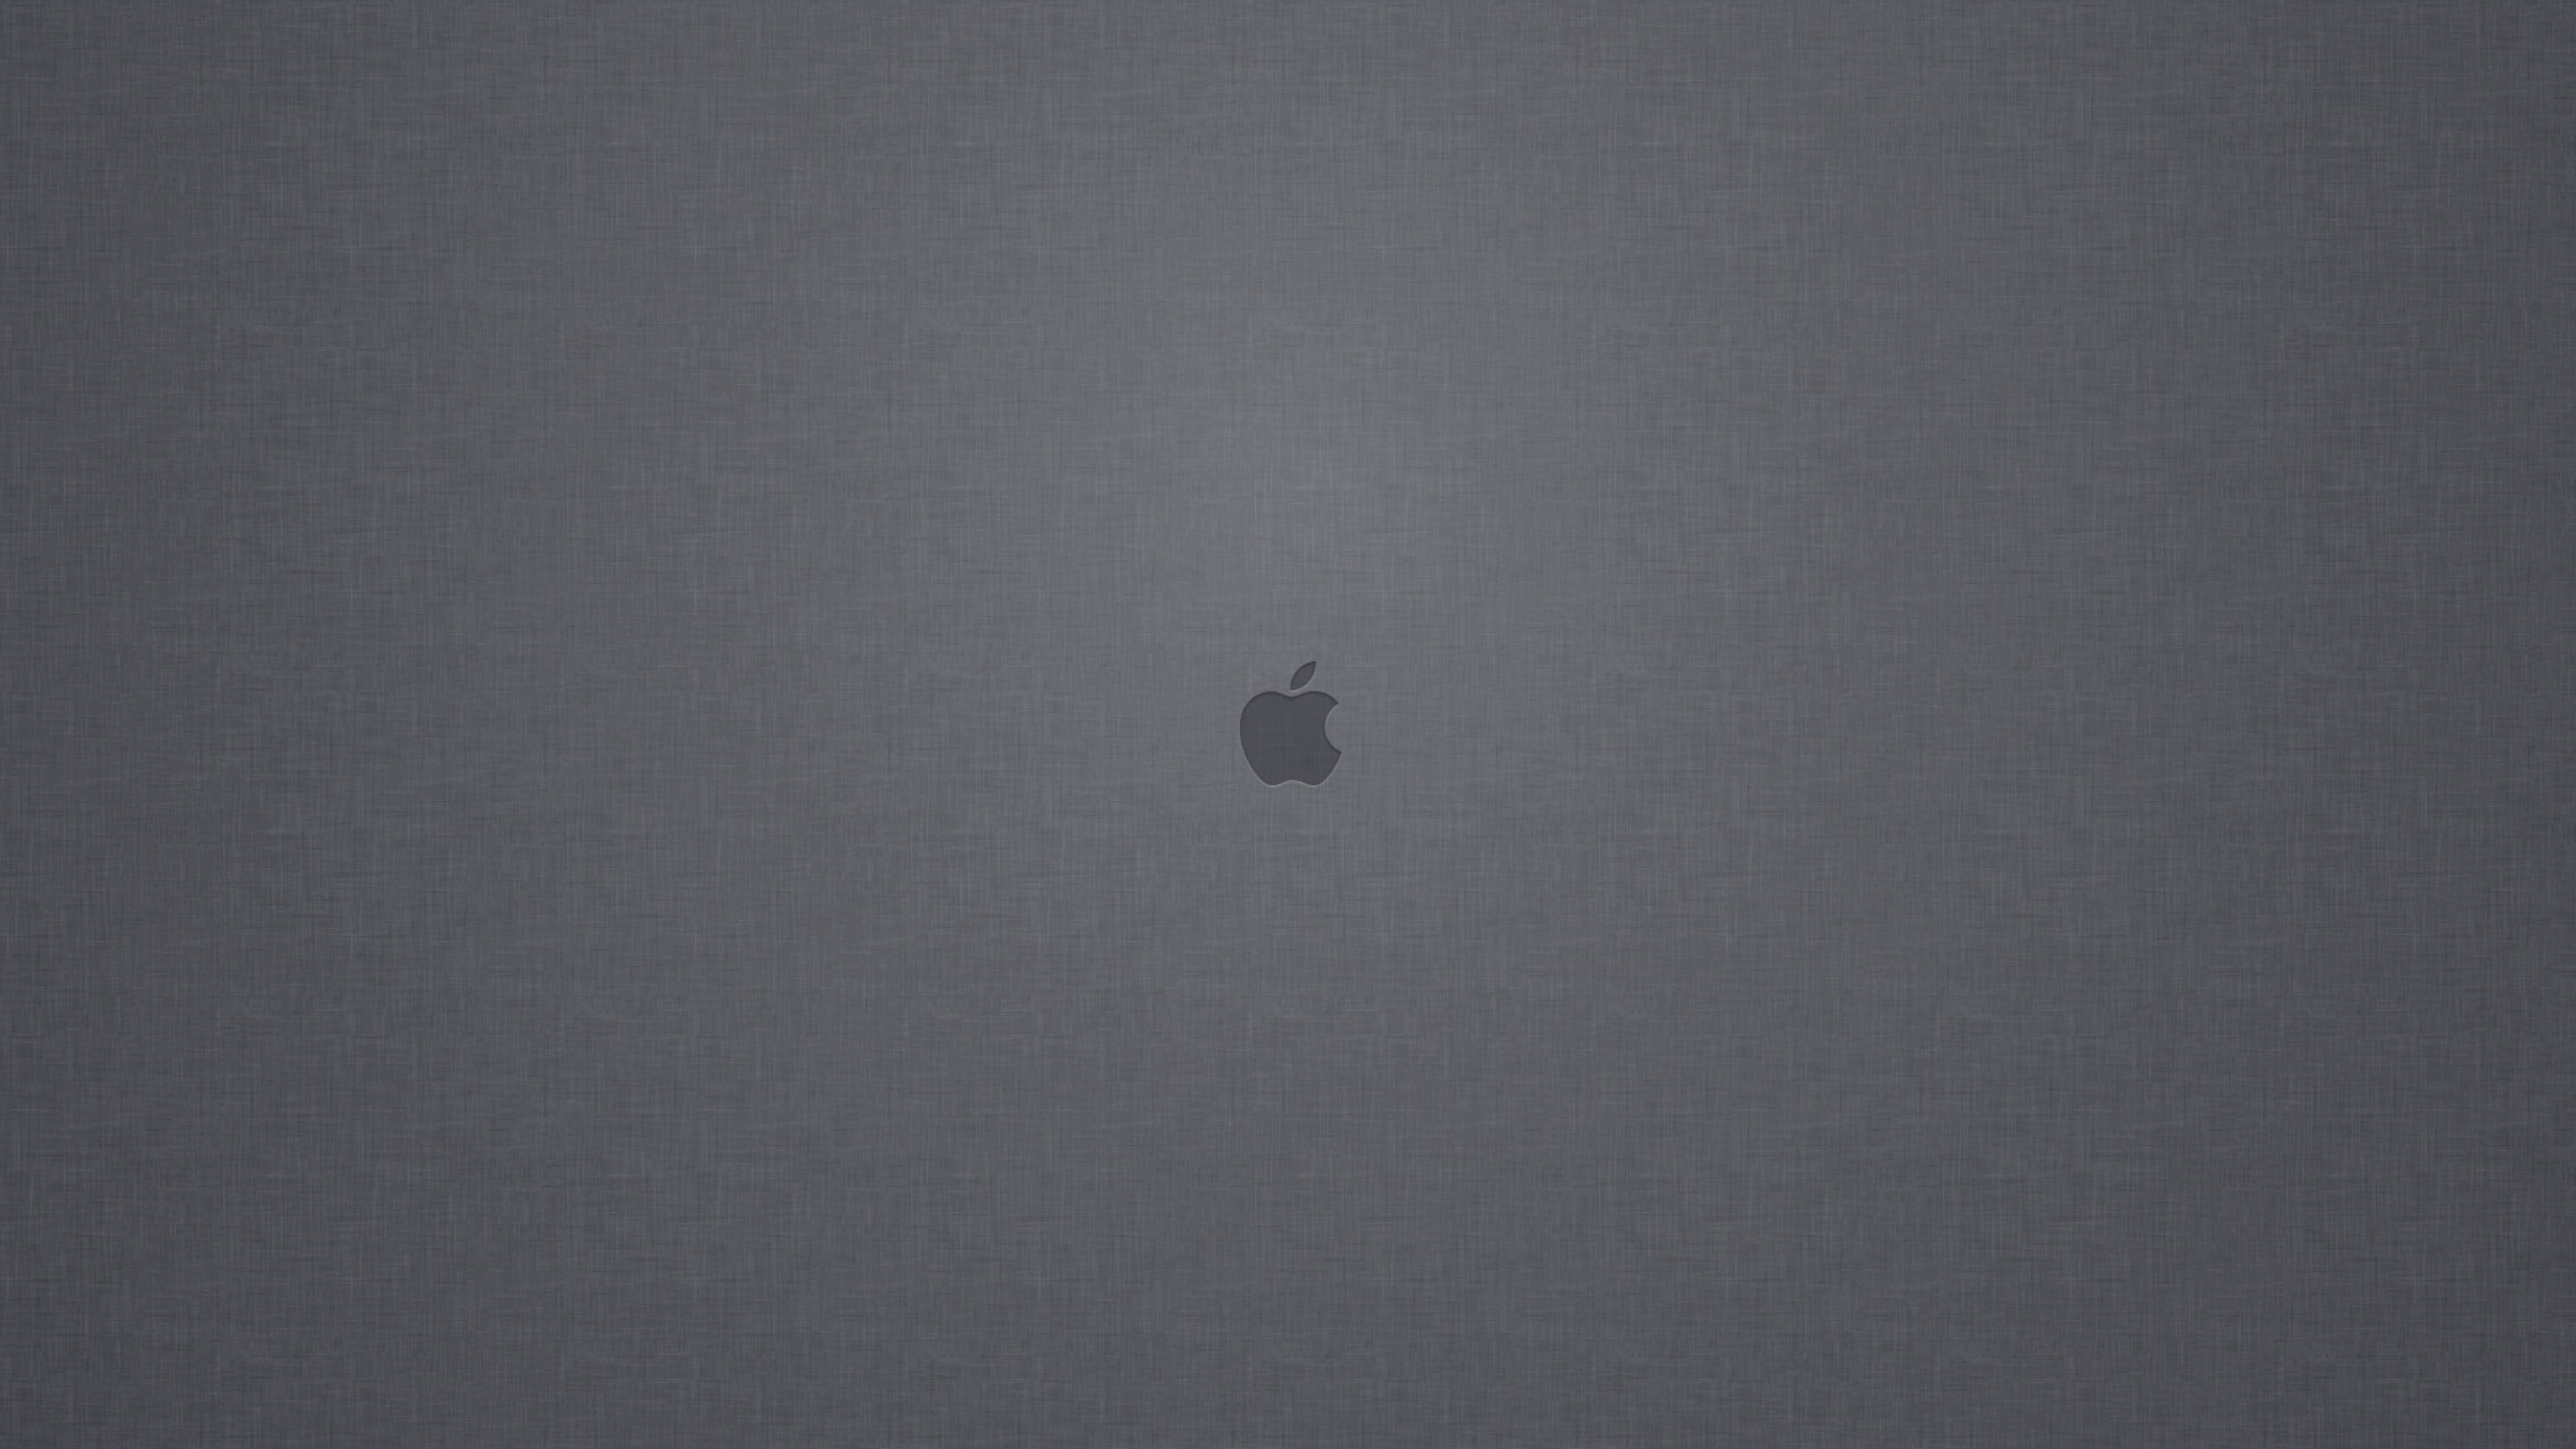 Apple Logo Denim Texture Wallpaper for Desktop 4K 3840x2160